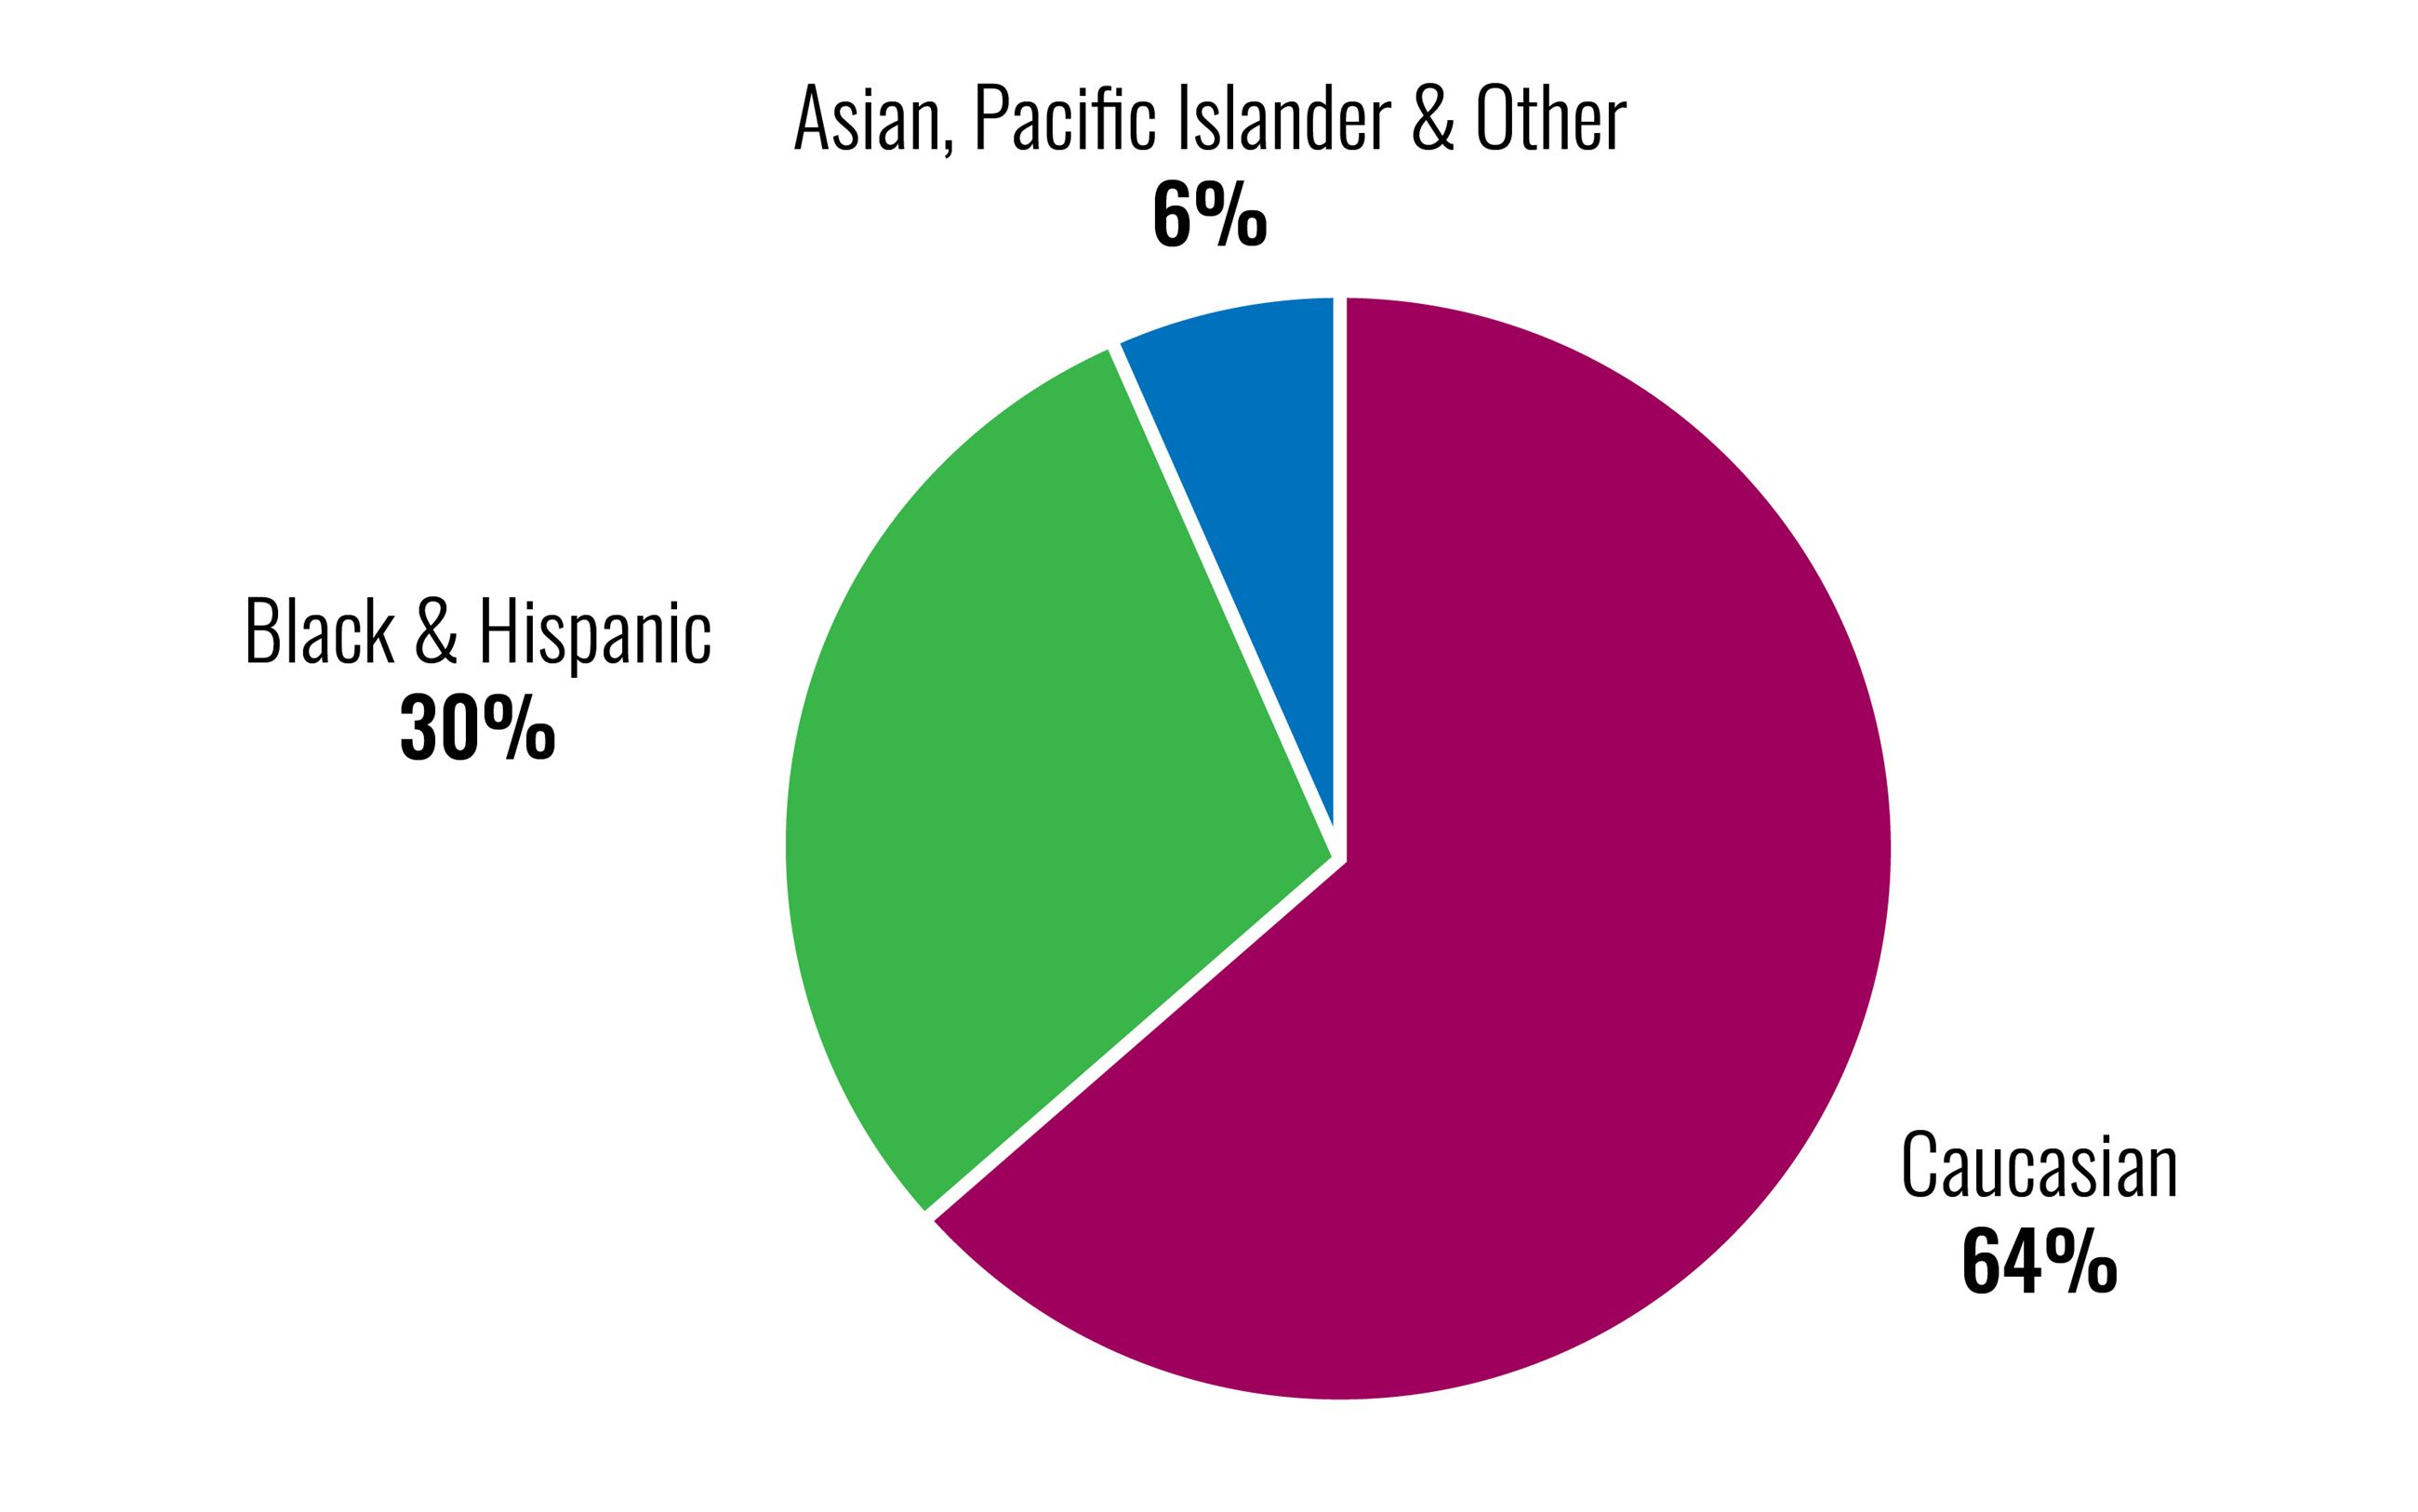 Police Diversity Pie Chart - Caucasian 64%, Black & Hispanic 20%, Asian, Pacific Islander & Other 6%